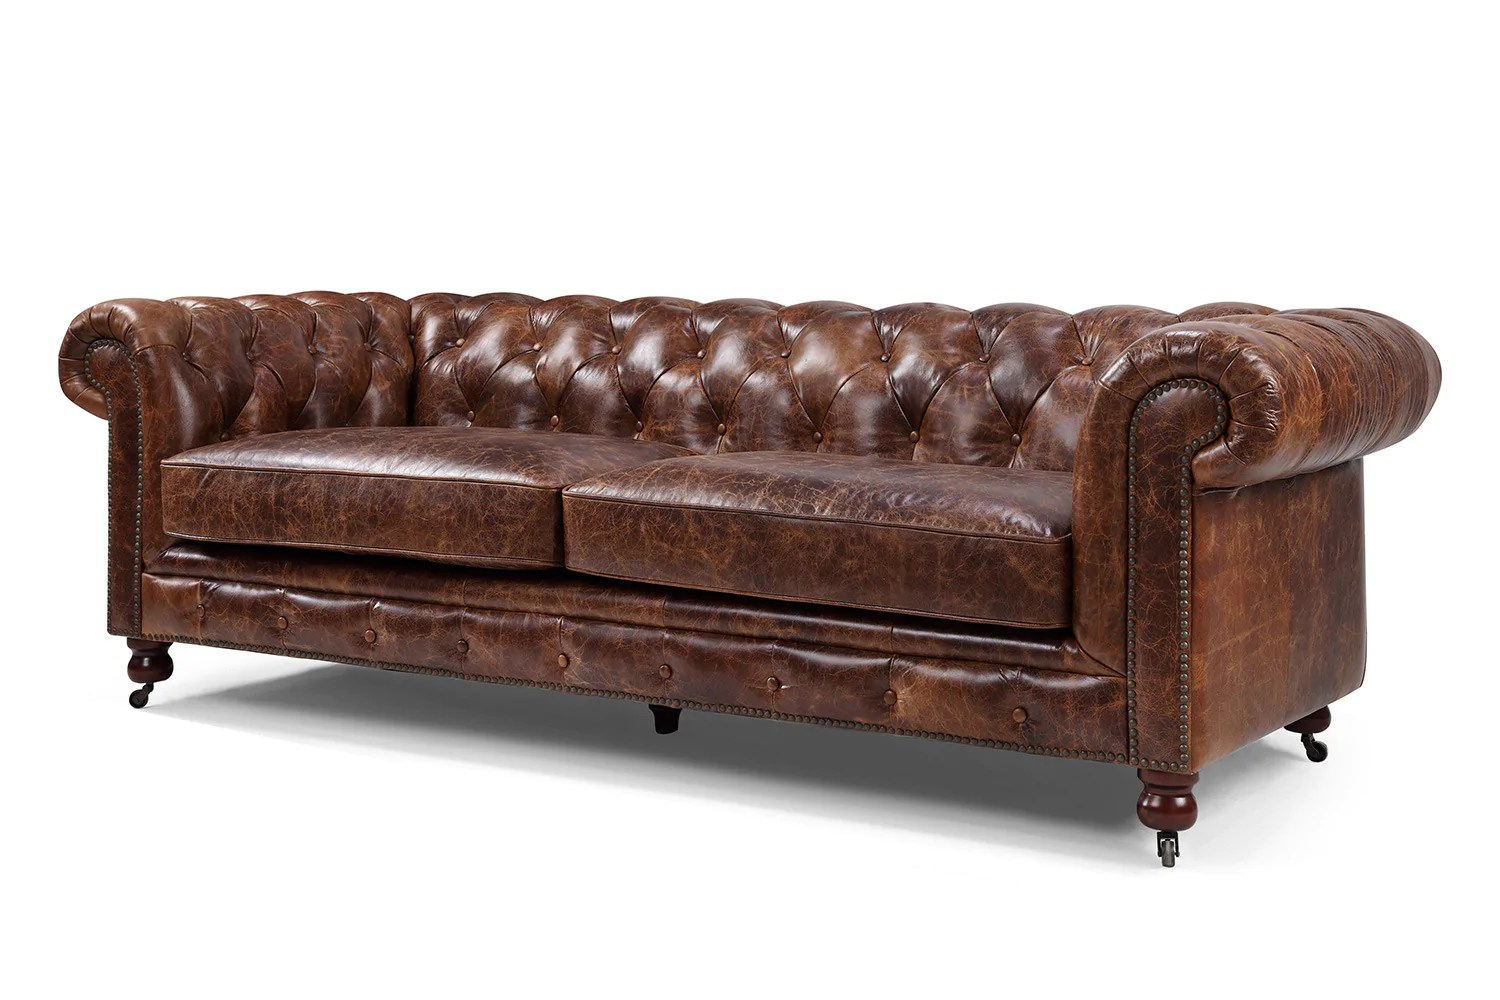 The Kensington Chesterfield Tufted Sofa Rose And Moore Kensington Chesterfield Tufted Sofa By Rose Moore